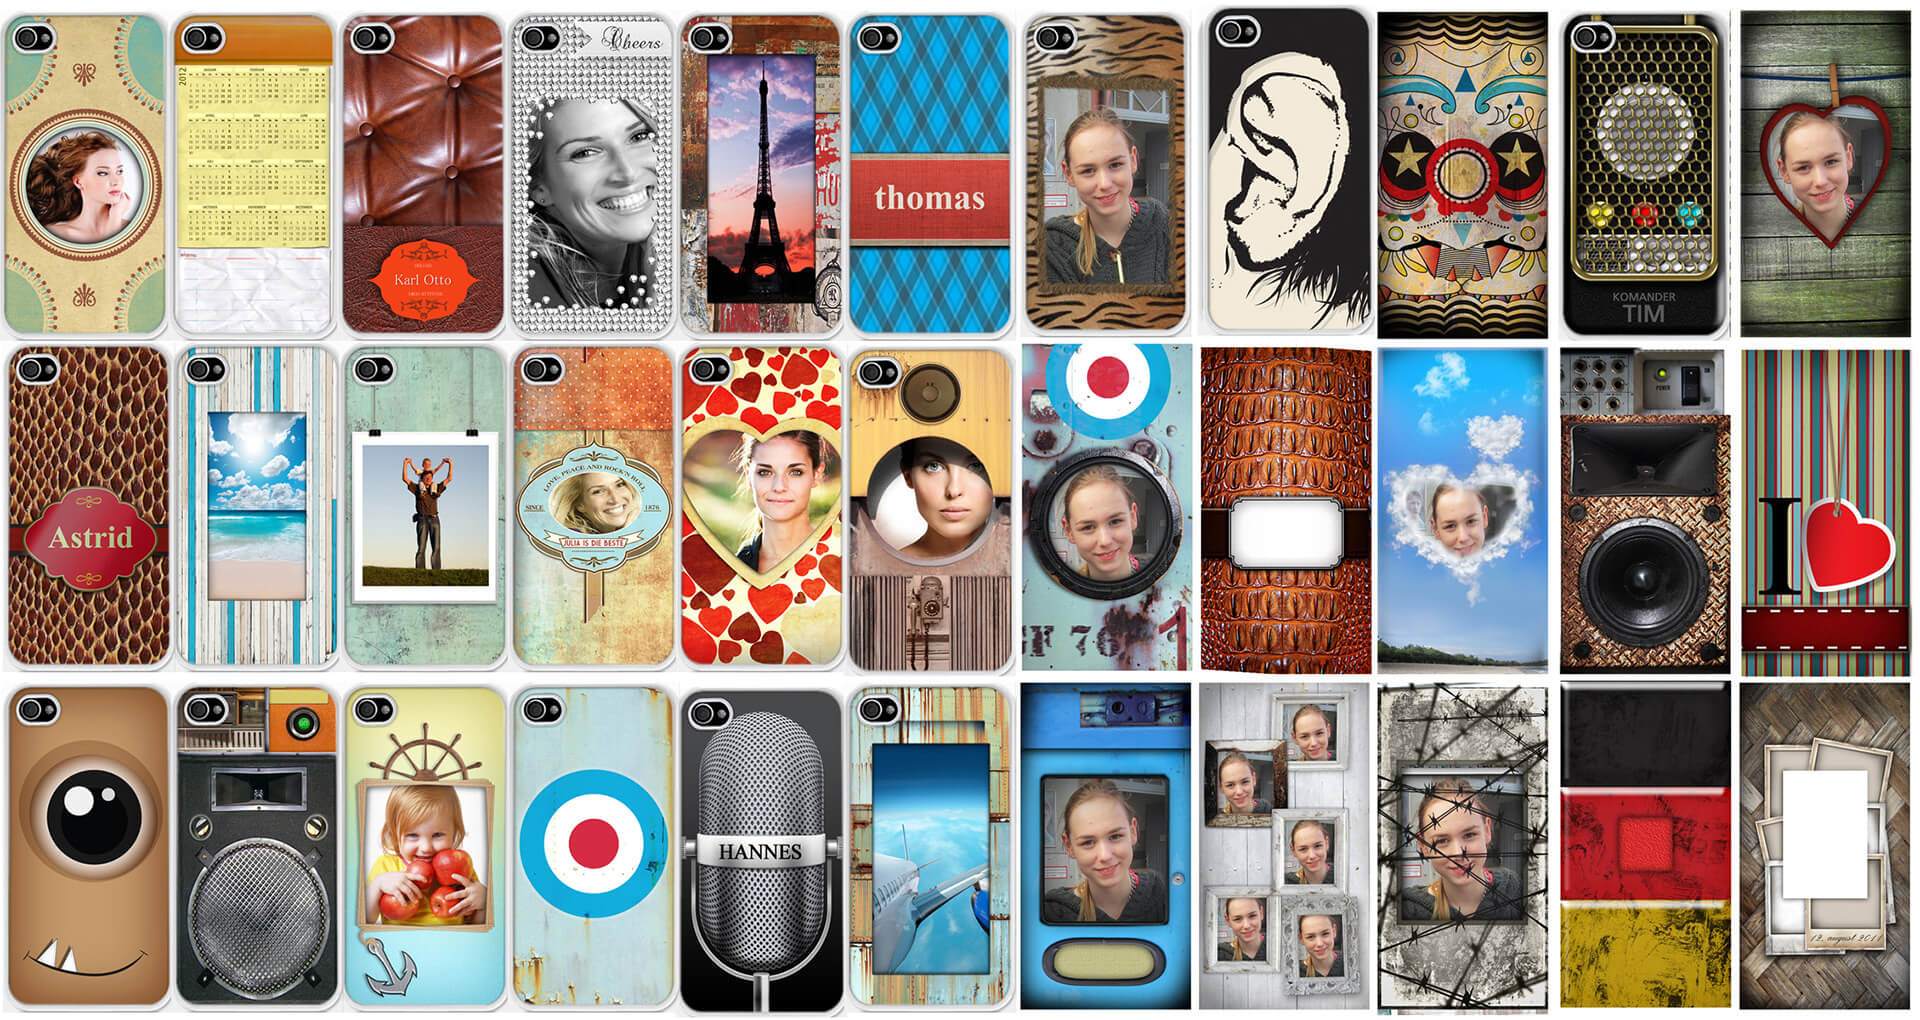 webtoprint fotobuch variable grafik walltattoo popart calendar smartphone case greeting card 17 2